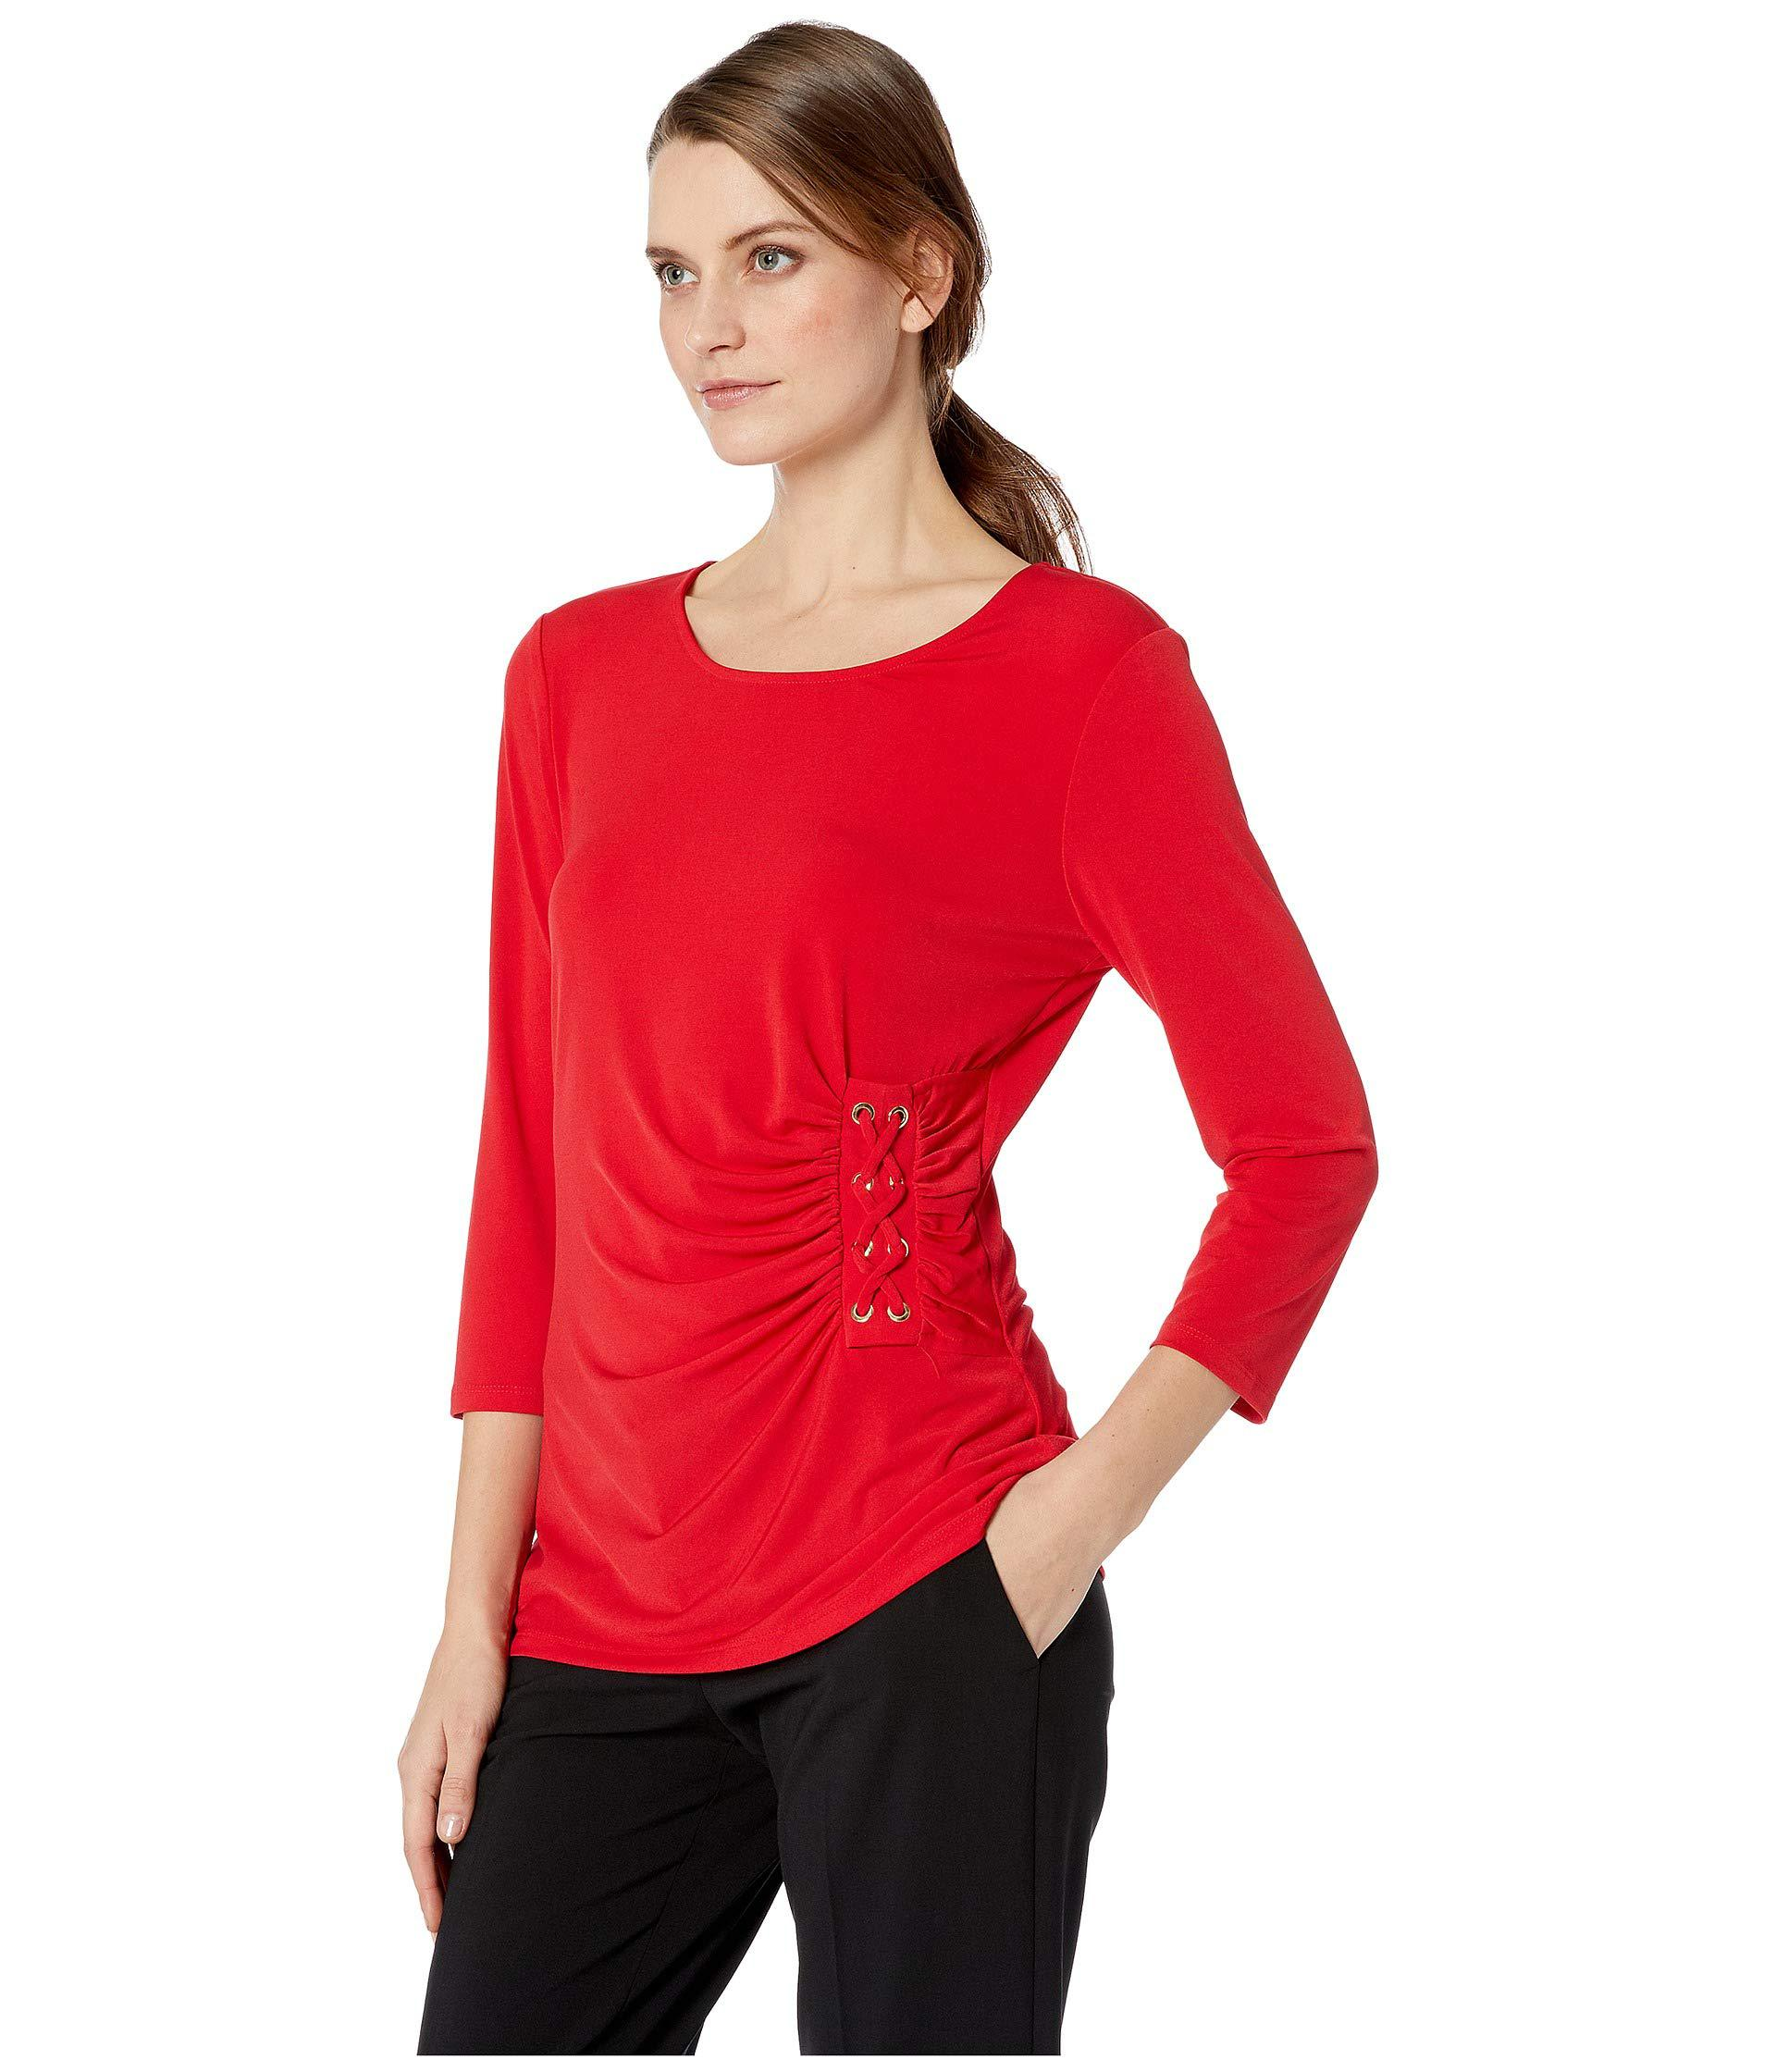 0b9227a8 Lyst - Calvin Klein 3/4 Sleeve Knit With Lacing (rouge) Women's Clothing in  Red